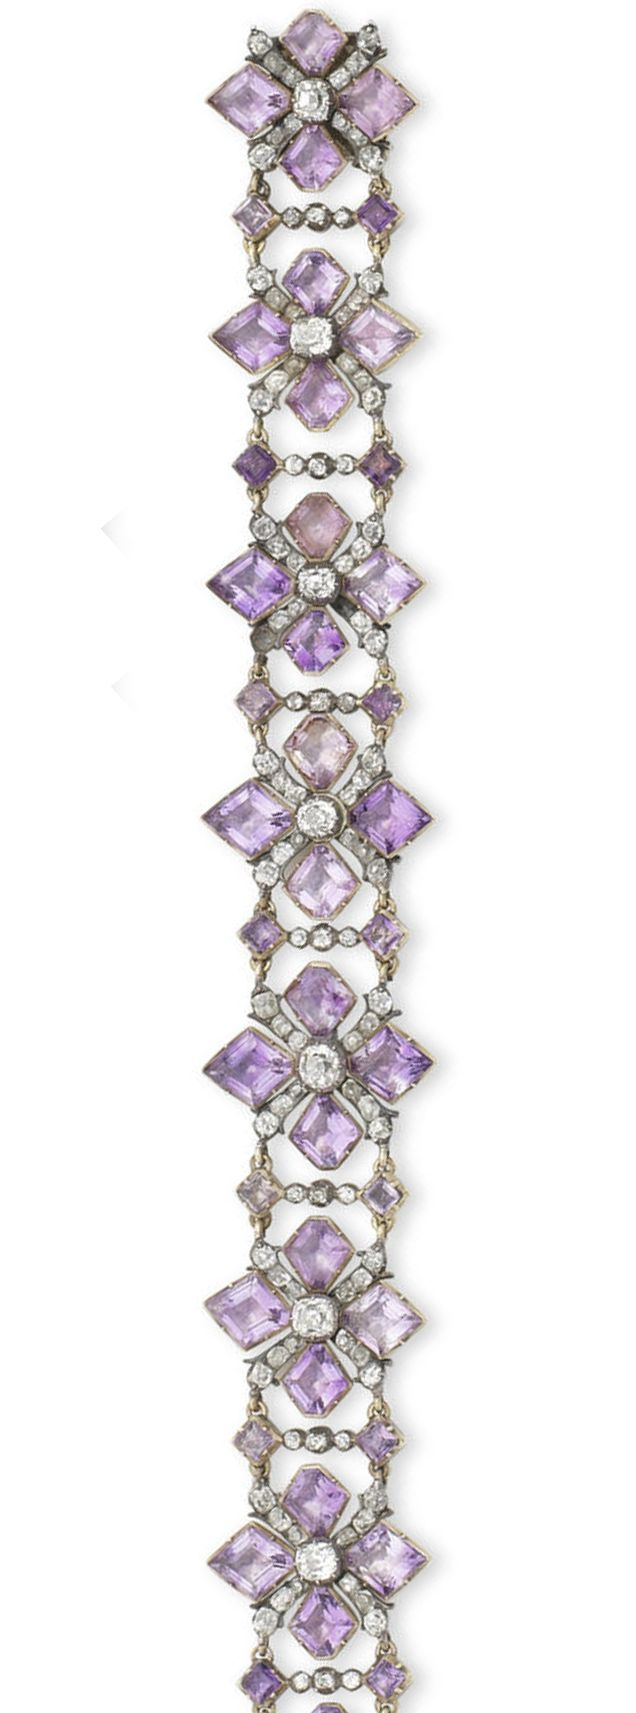 A rare 18th century amethyst and diamond bracelet.  The openwork strap composed of kite-shaped amethysts and cushion-shaped and old brilliant-cut diamond quatrefoils, mounted in silver and gold, closed-back settings throughout, length 28.0cm